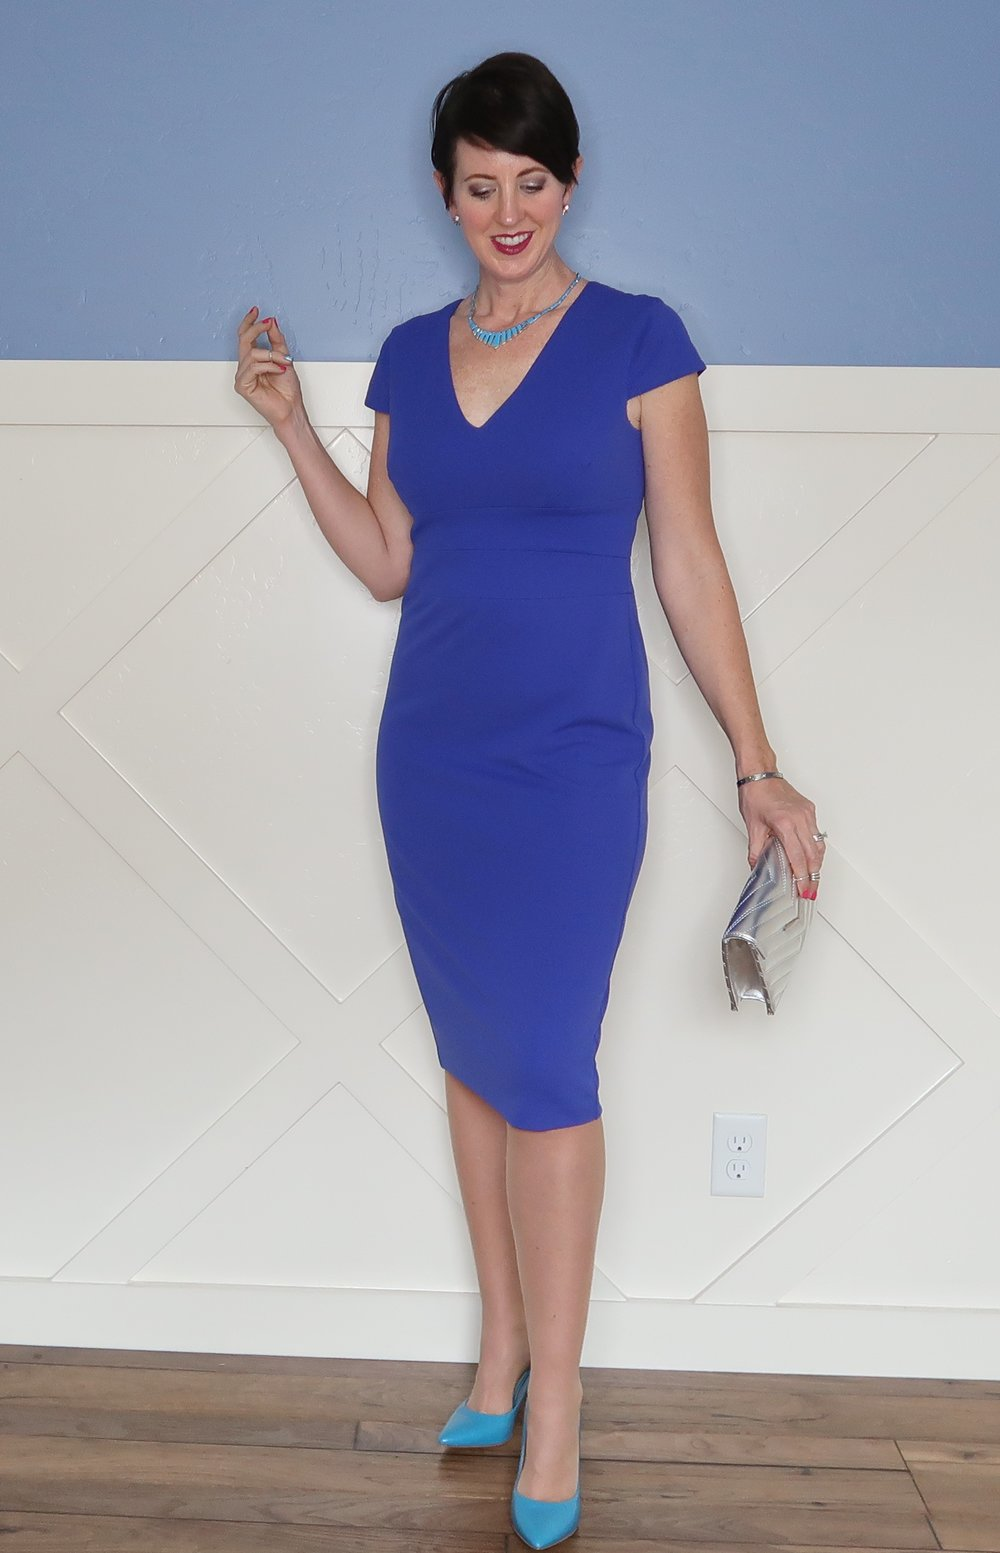 Stunning Style - Four Ways to Wear It, The Classic Sheath Dress